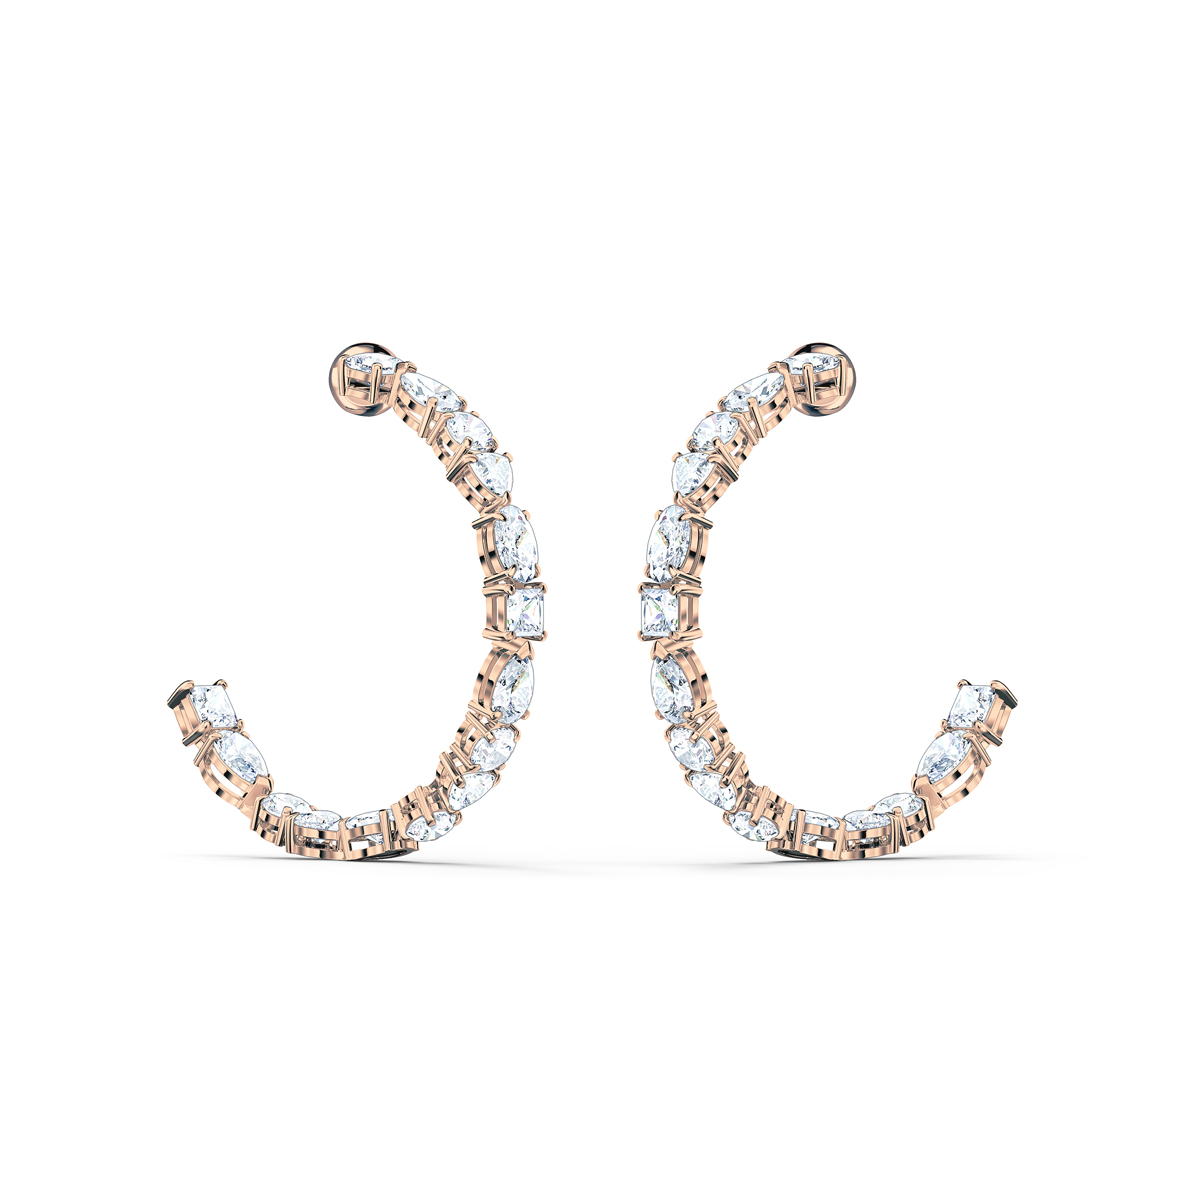 Swarovski Tennis Deluxe Mixed Hoop Pierced Earrings, White, Rose Gold Tone Plated